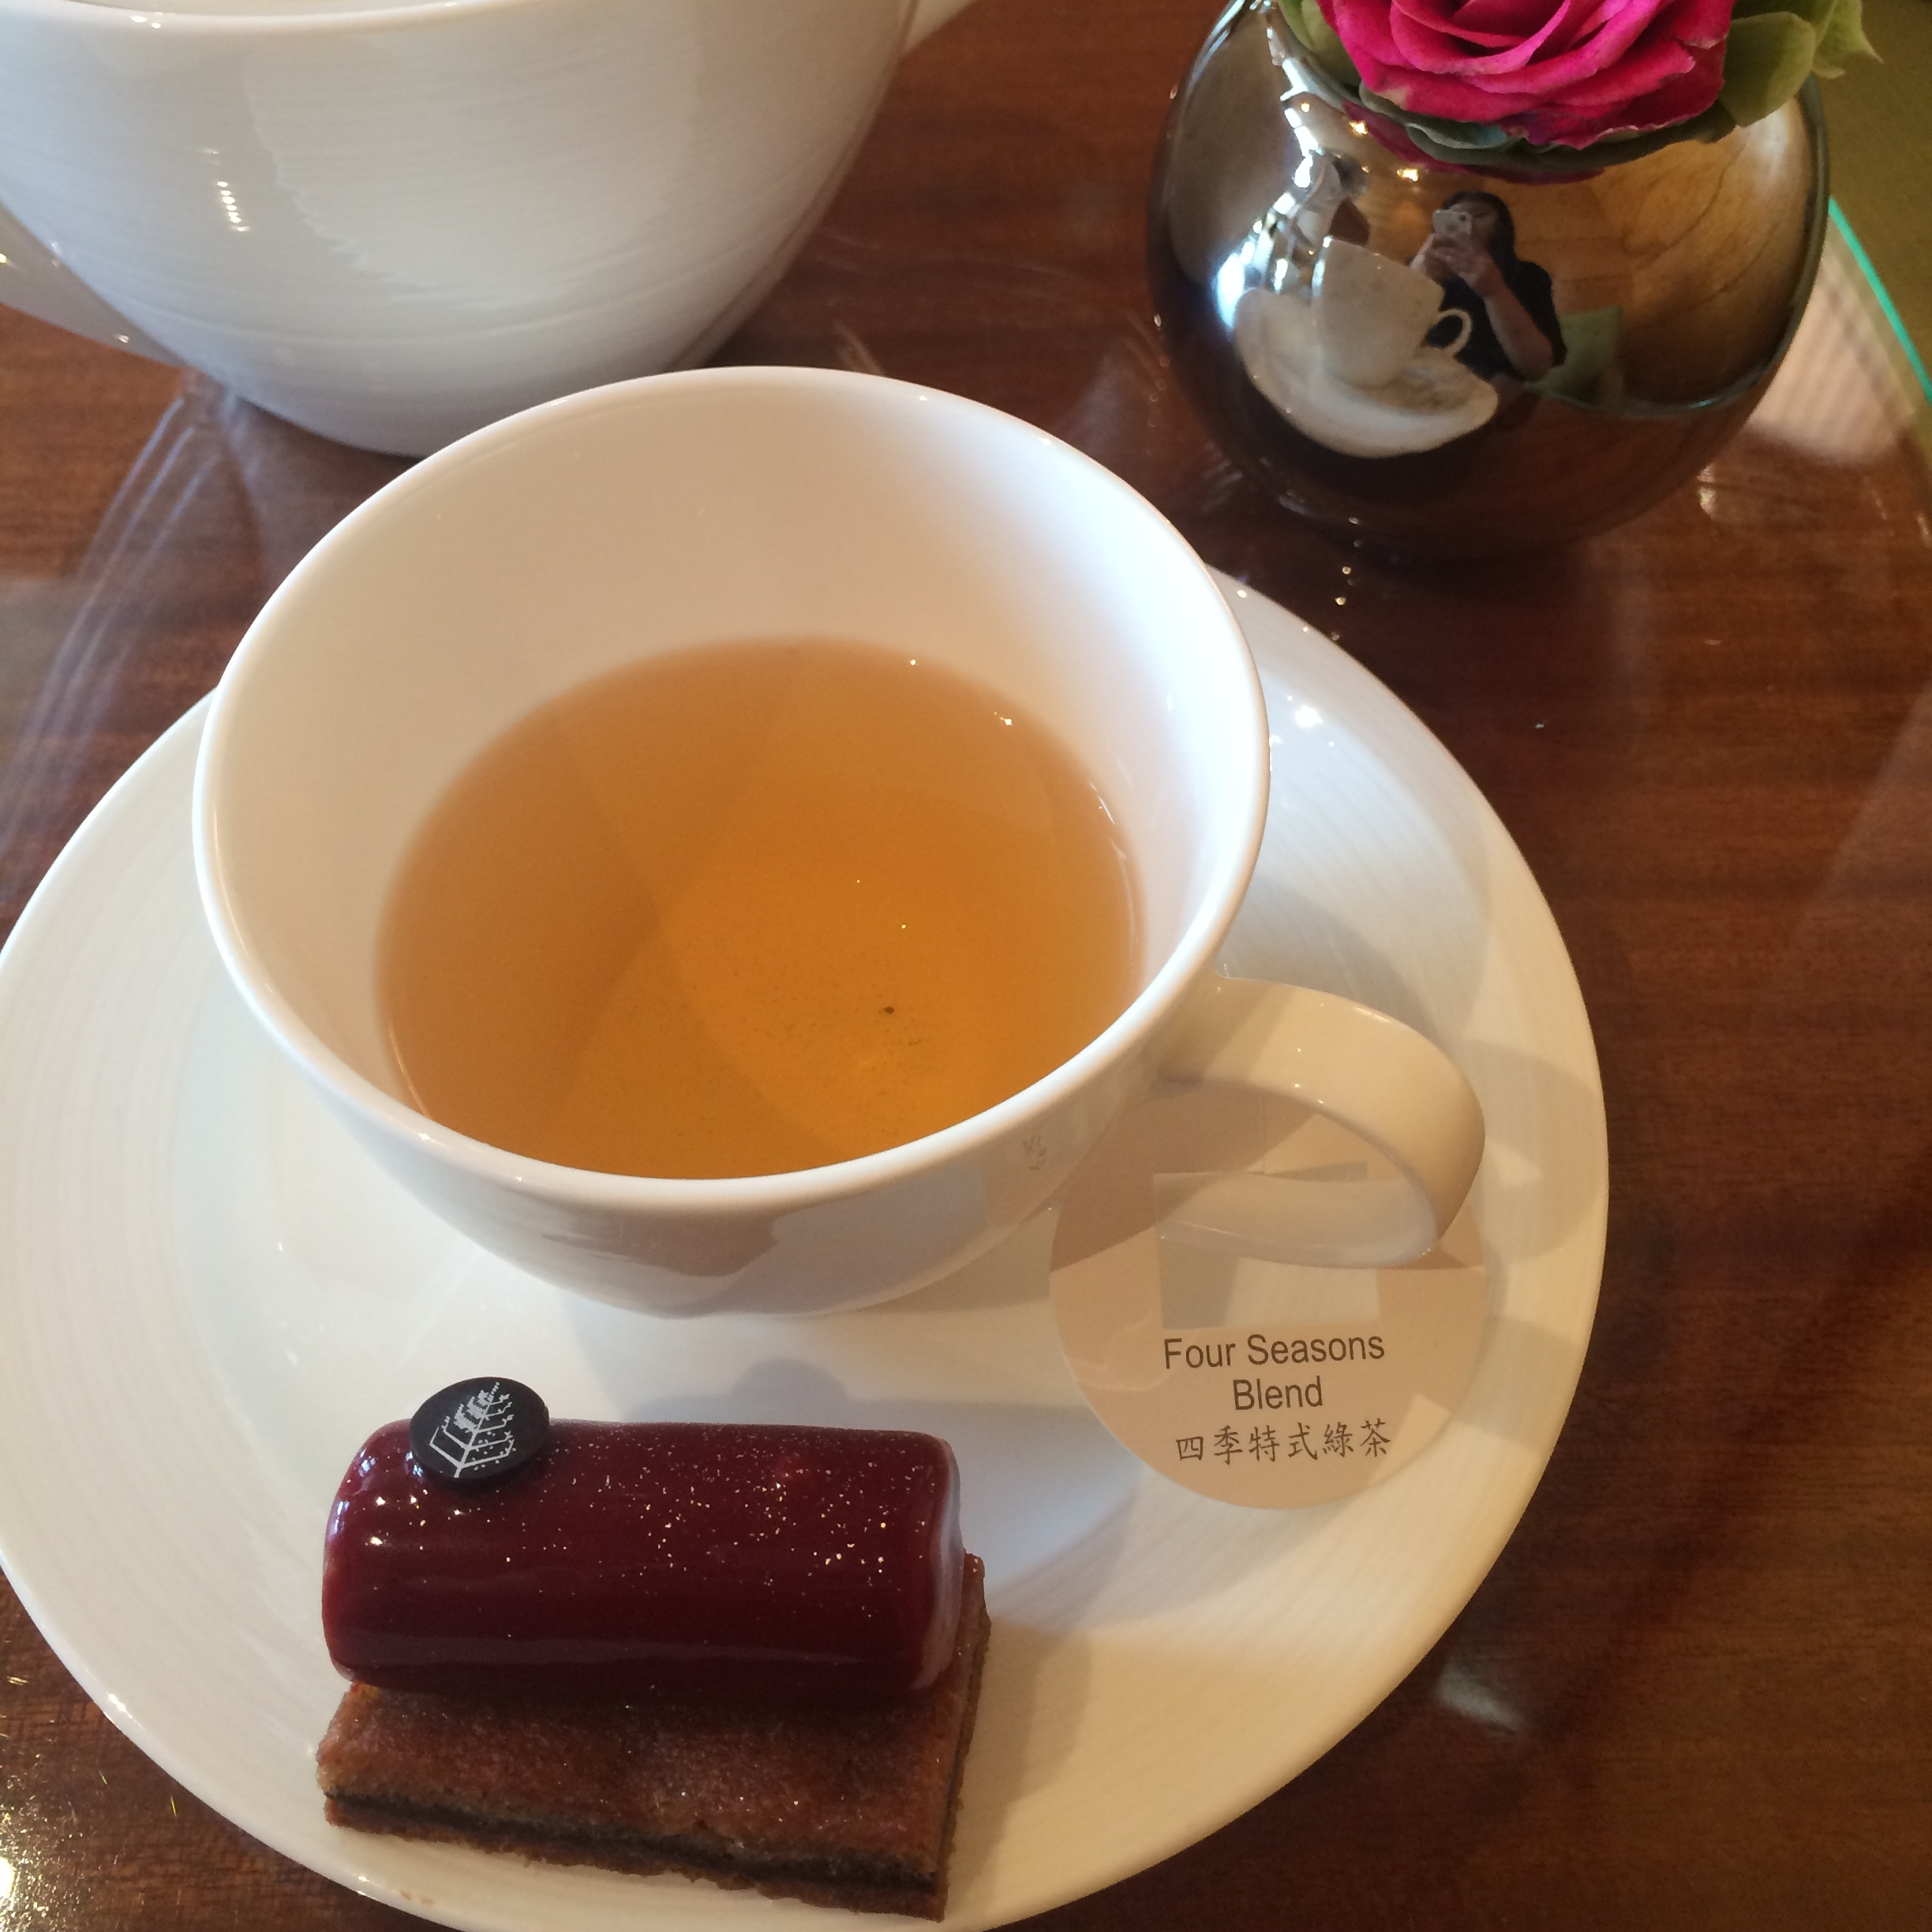 Afternoon Tea at Four Seasons Hotel Hong Kong